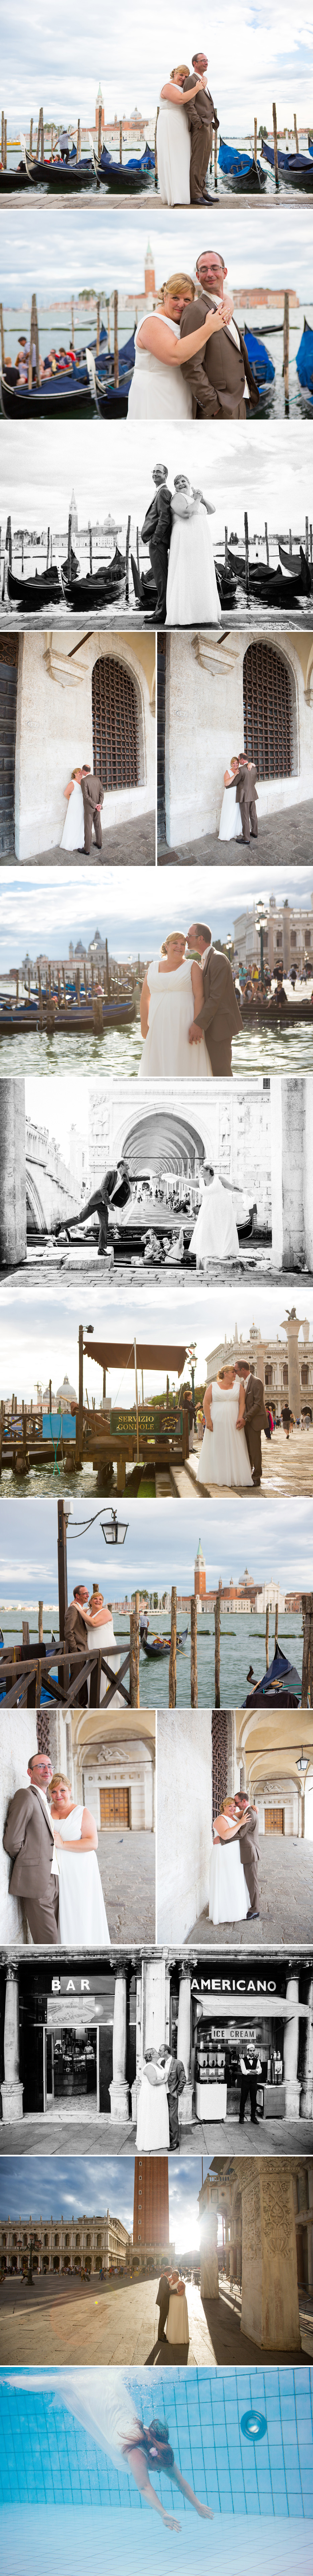 trash the dress photo shooting venice